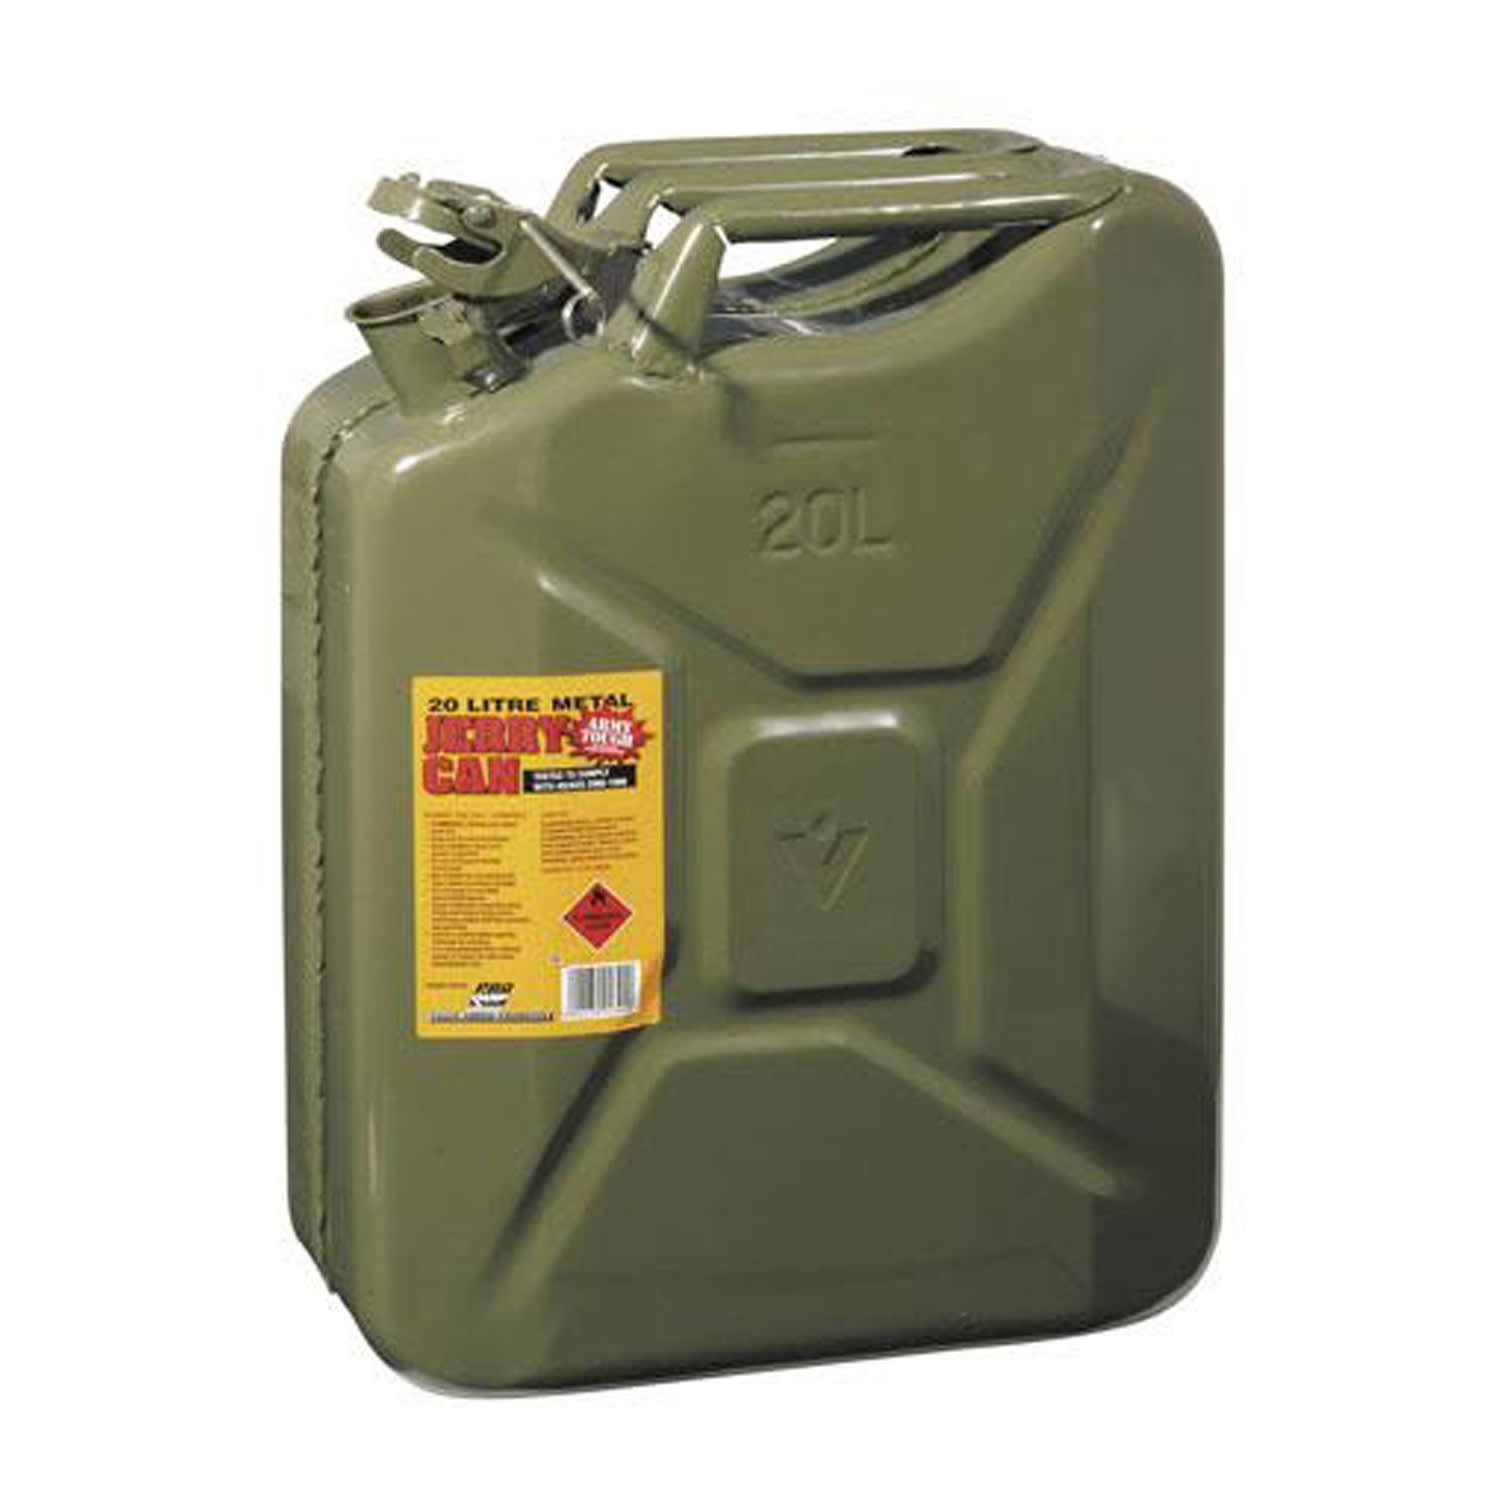 ProQuip Metal 20L Petrol Jerry Can